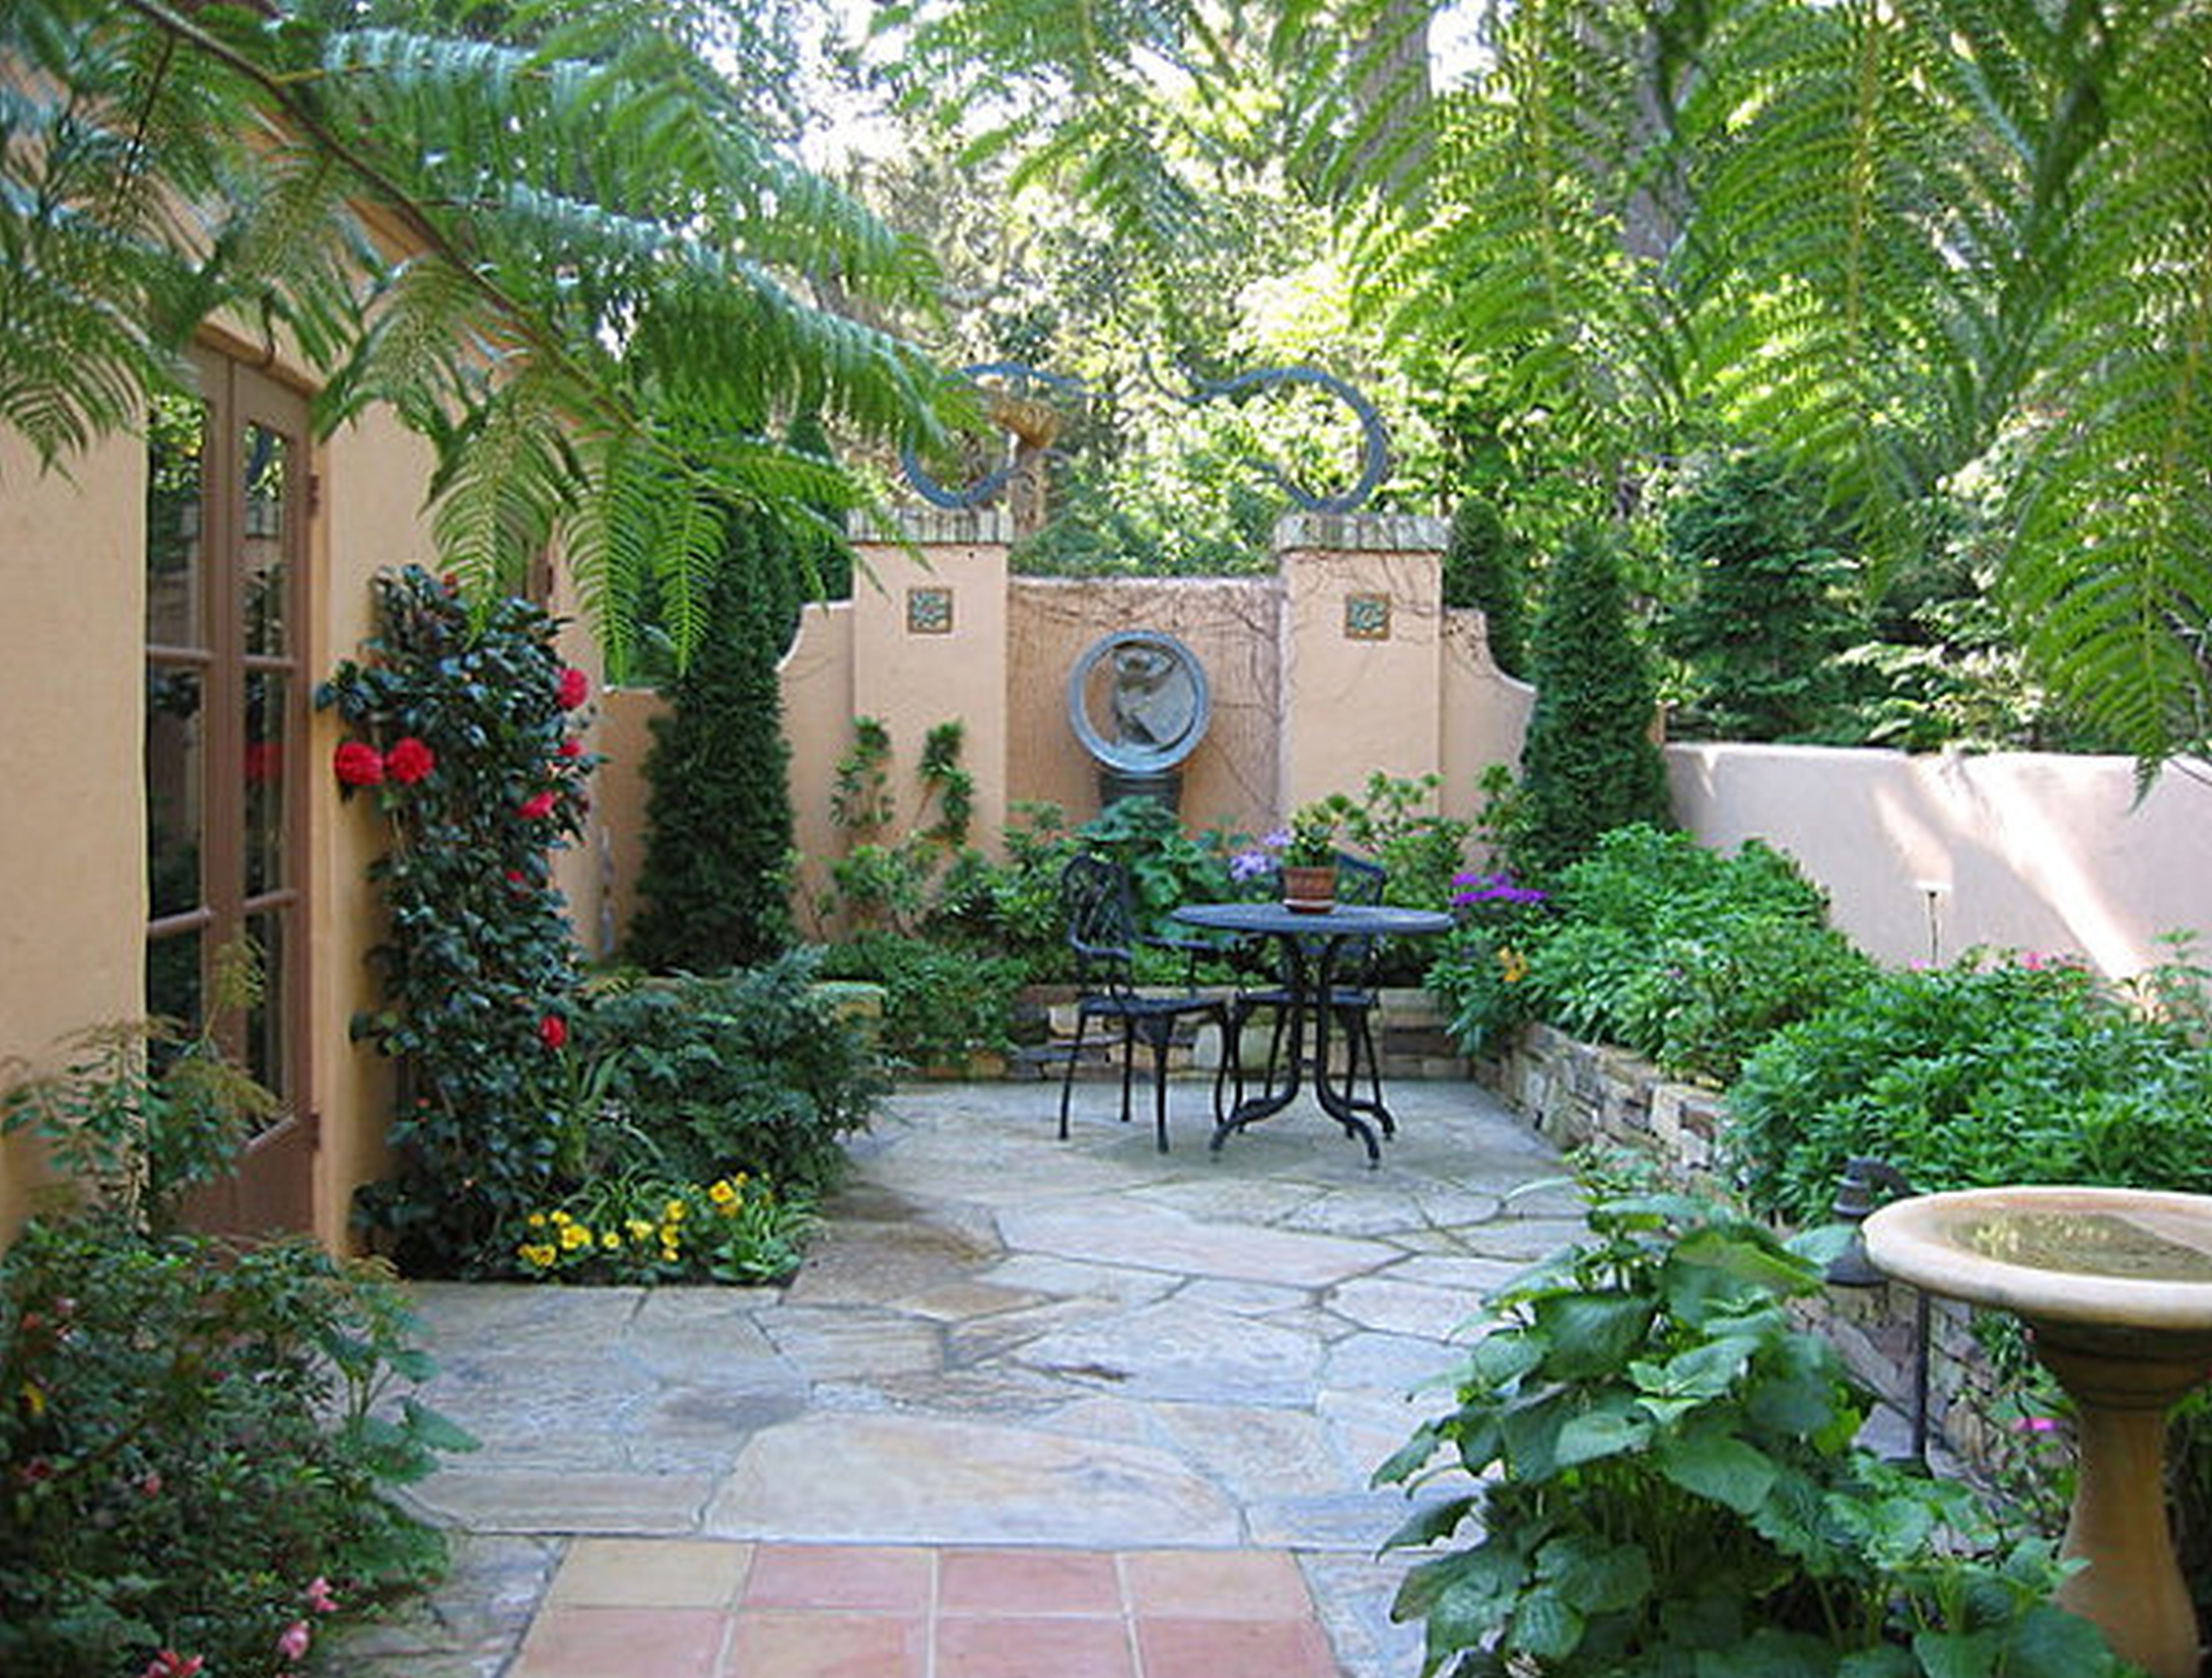 Images About Yard Tiny With A Townhouse Ideas Landscape For Small within Townhouse Backyard Landscaping